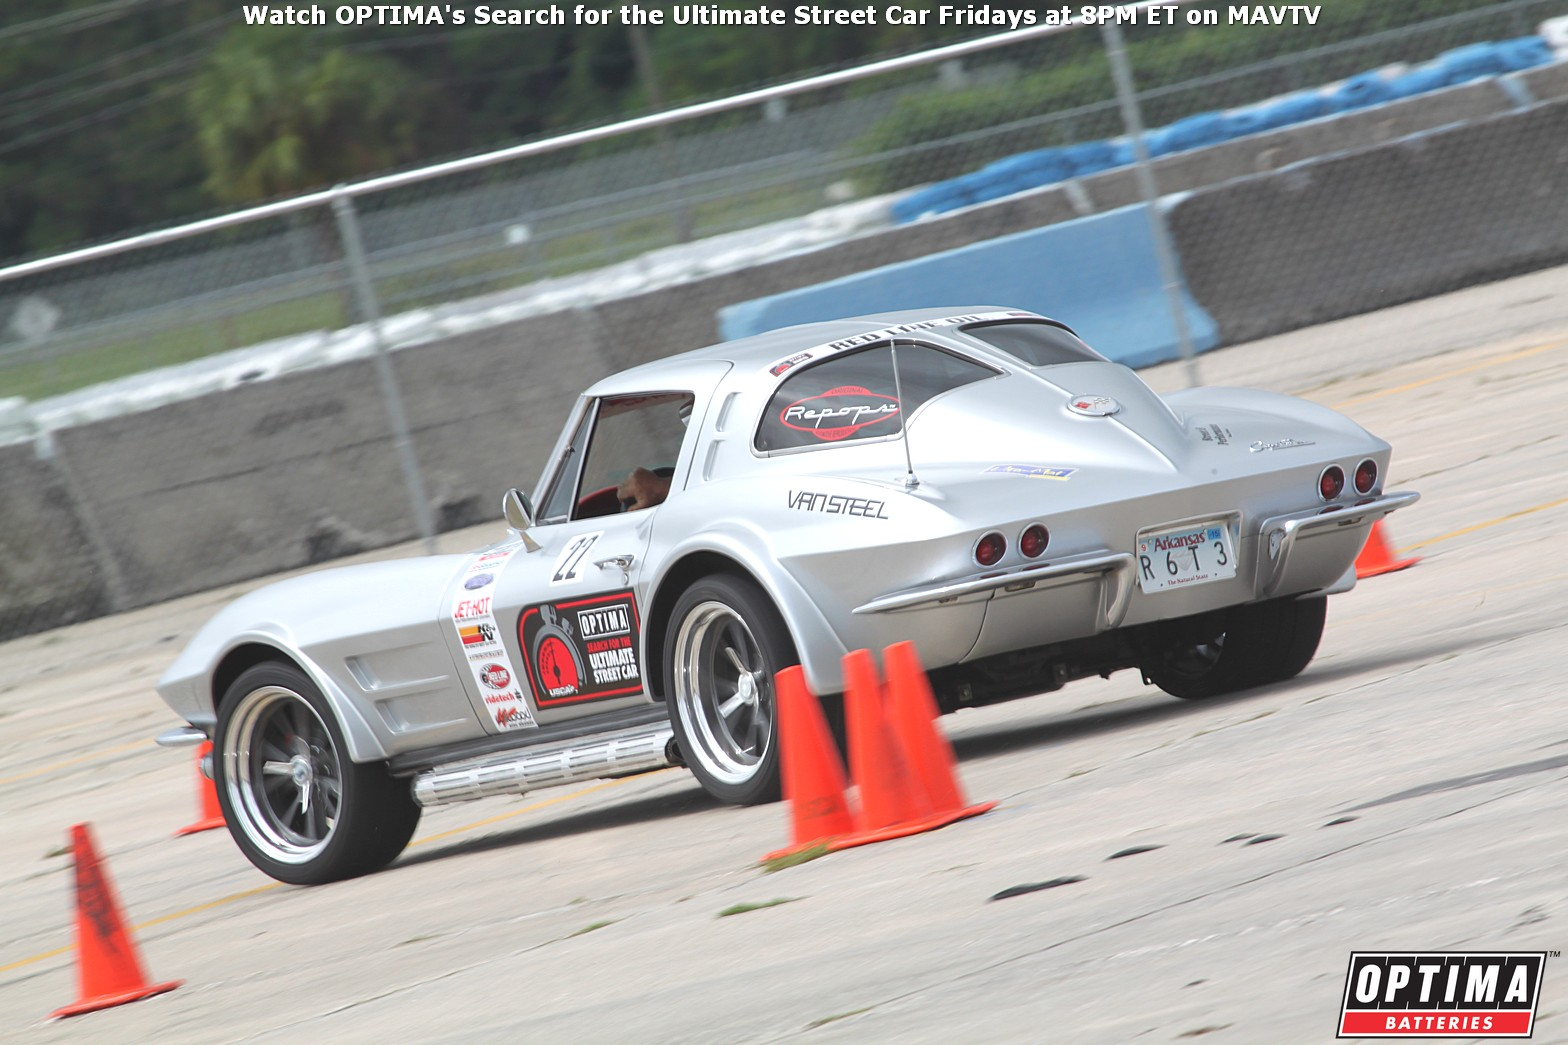 2014 OUSCI Preview- Jeff Montgomery's 1963 Chevrolet Corvette